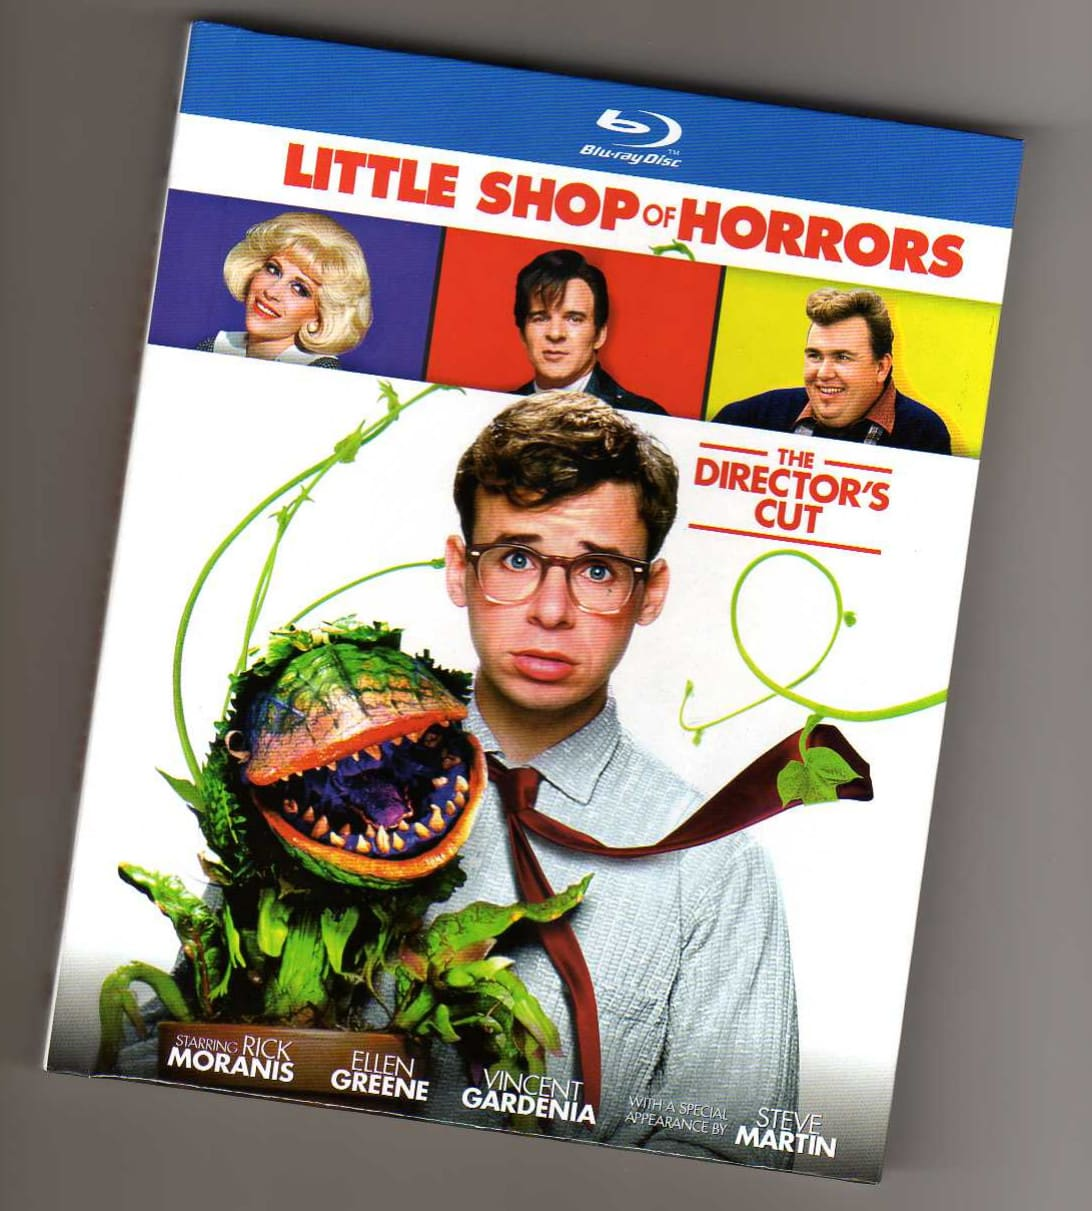 Little Shop of Horrors — Blu-ray packaging booklet